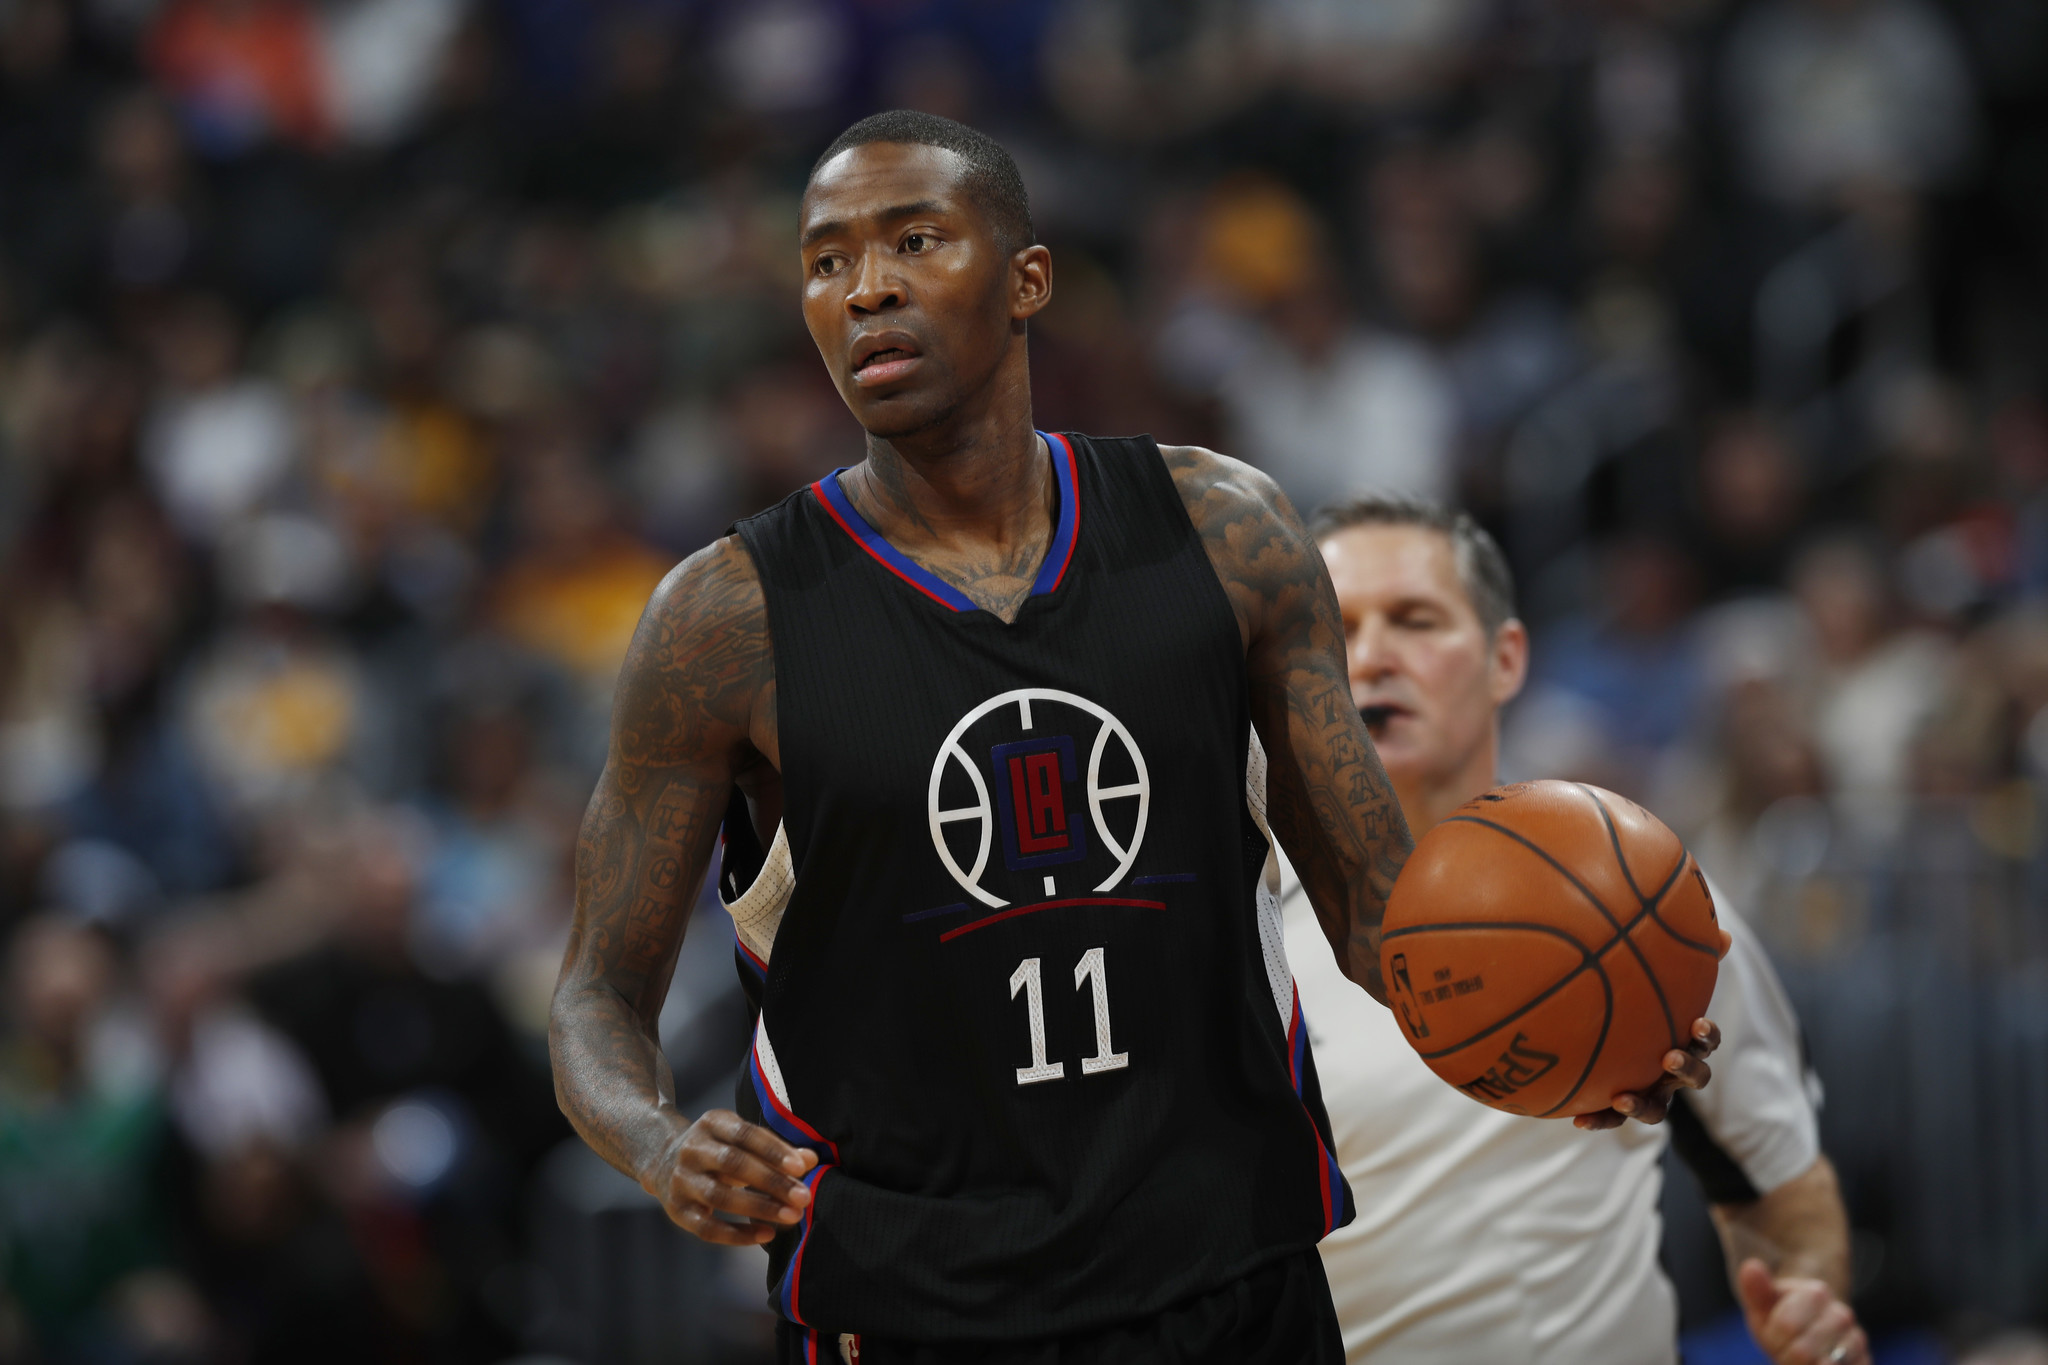 17 seasons later Clippers guard Jamal Crawford is still ting